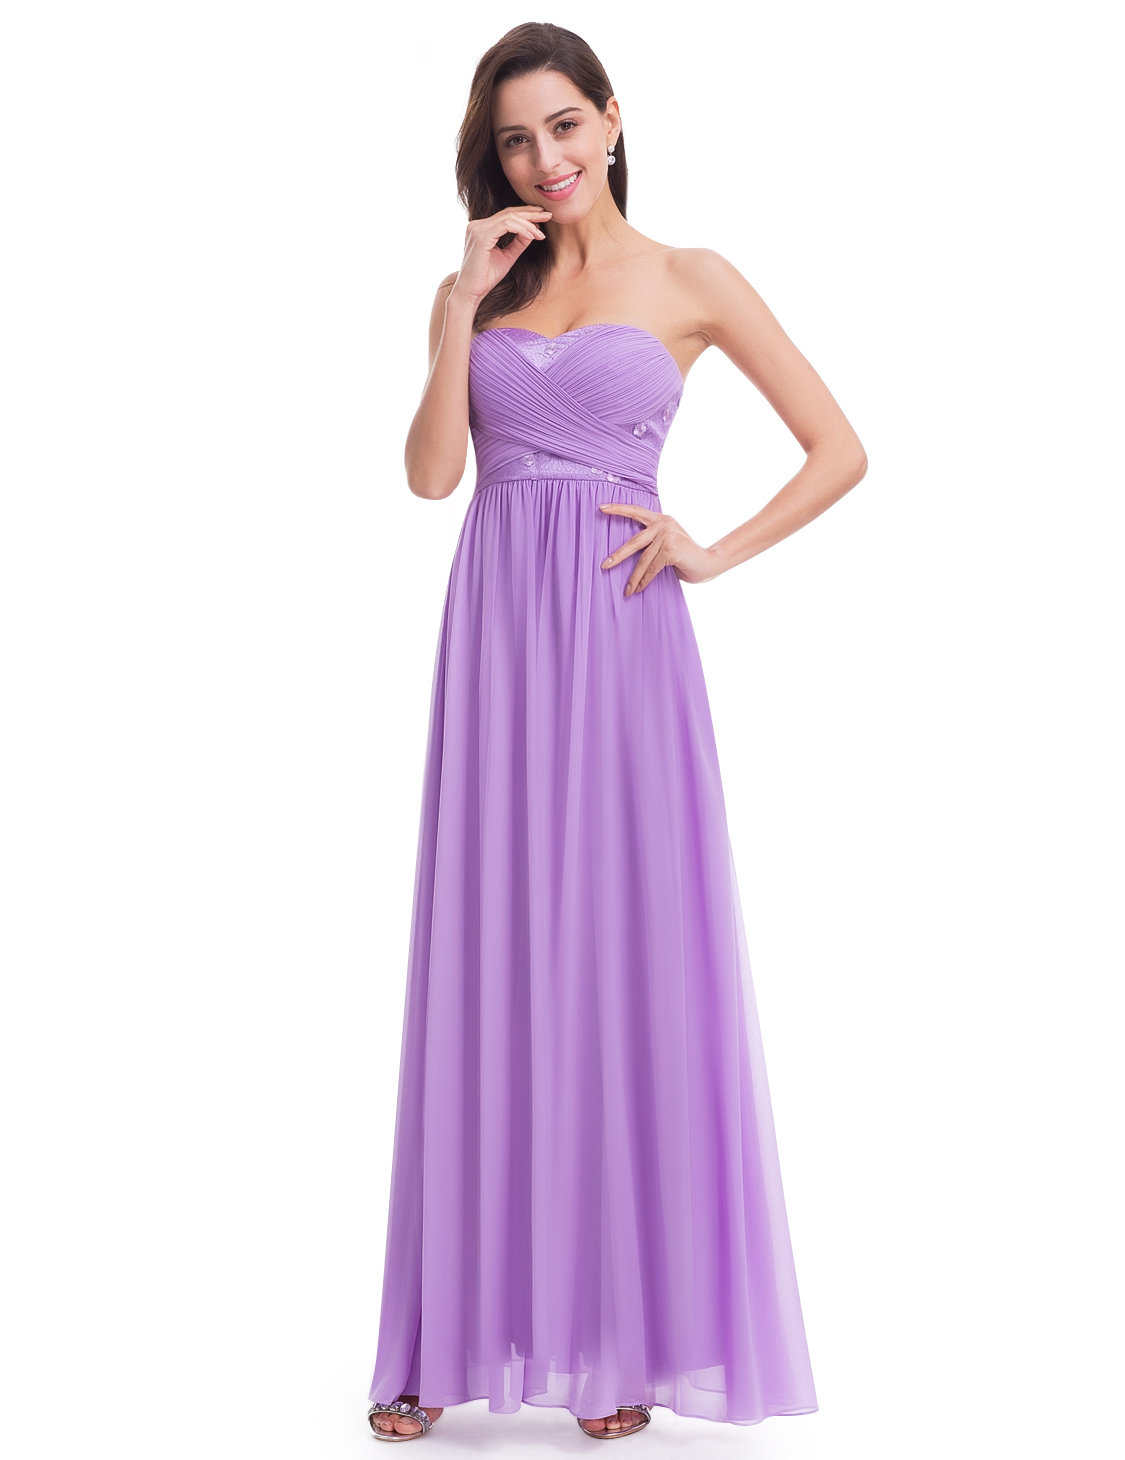 Ever-Pretty Strapless Long Bridesmaid Dresses Lavender Evening Prom Gowns 07057